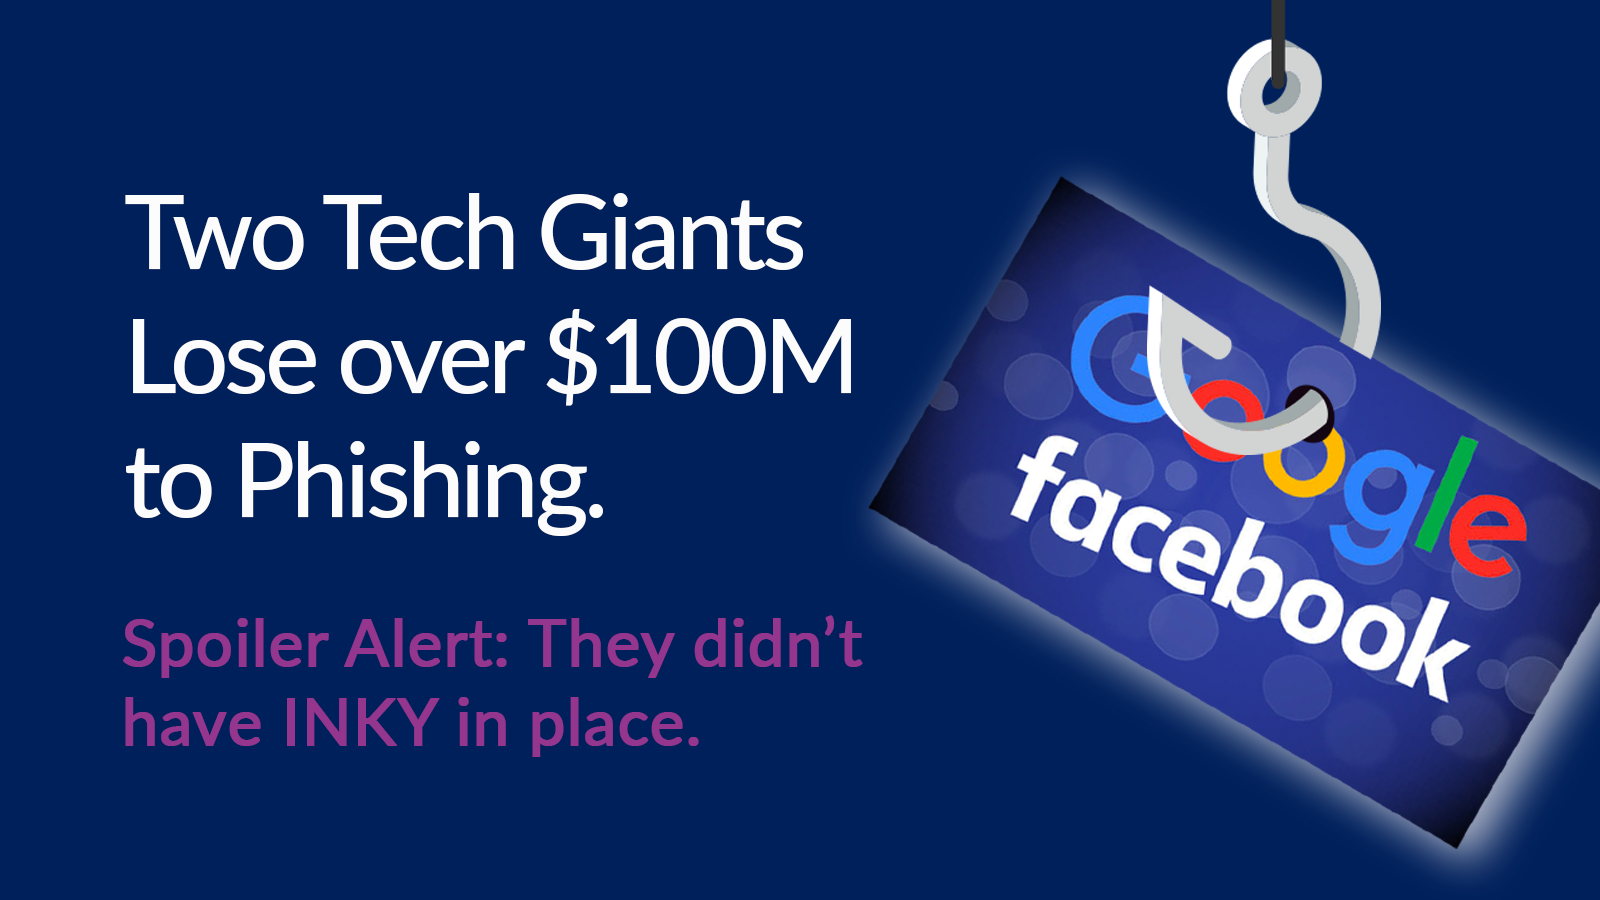 Two Tech Giants Lose over $100M to Phishing